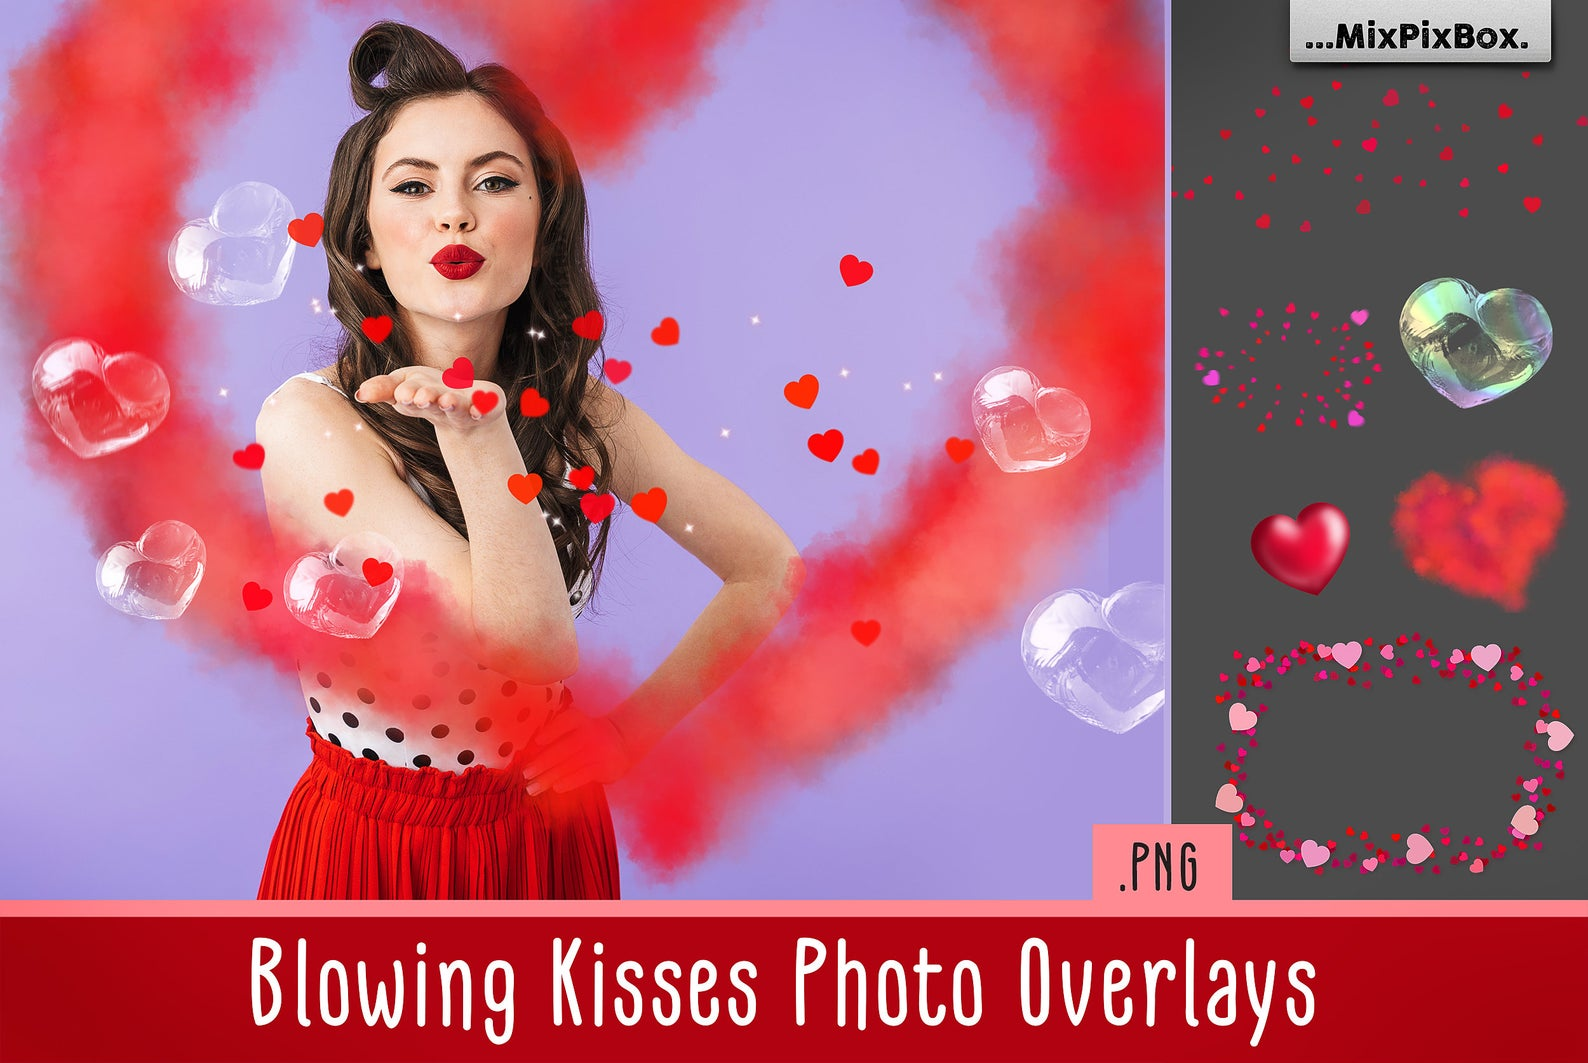 Love Overlays PNG: 38 Photo Overlays High Resolution - blowing kisses first image